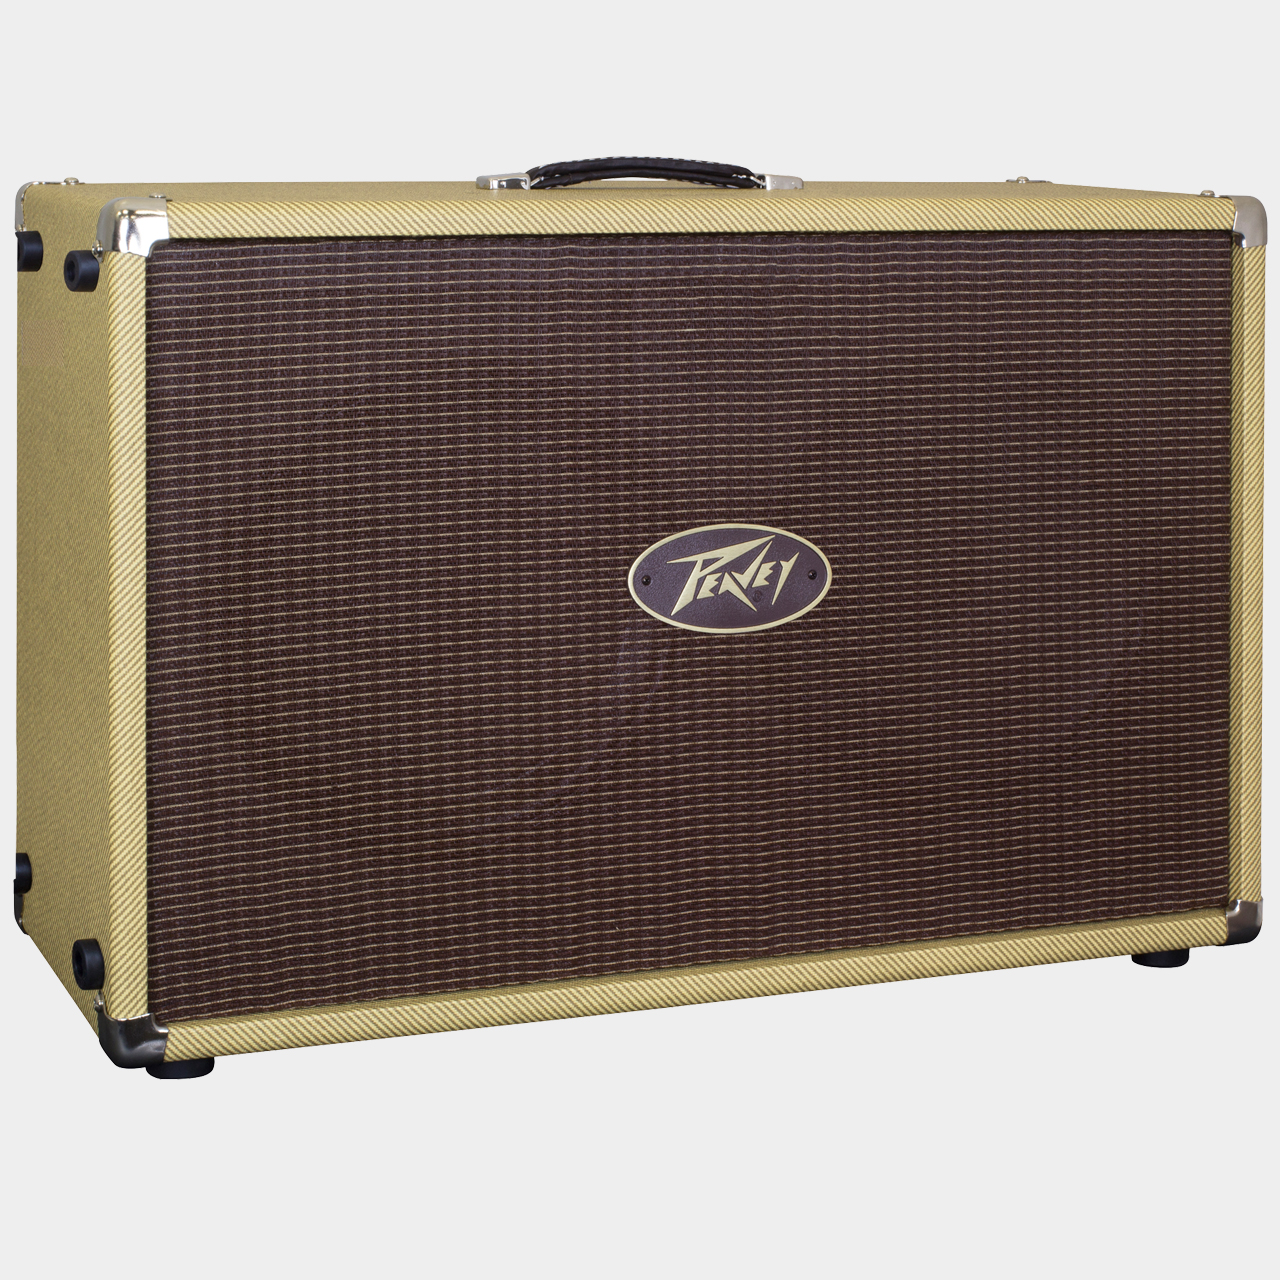 PEAVEY 212-C Classic Extension Cabinet Angle